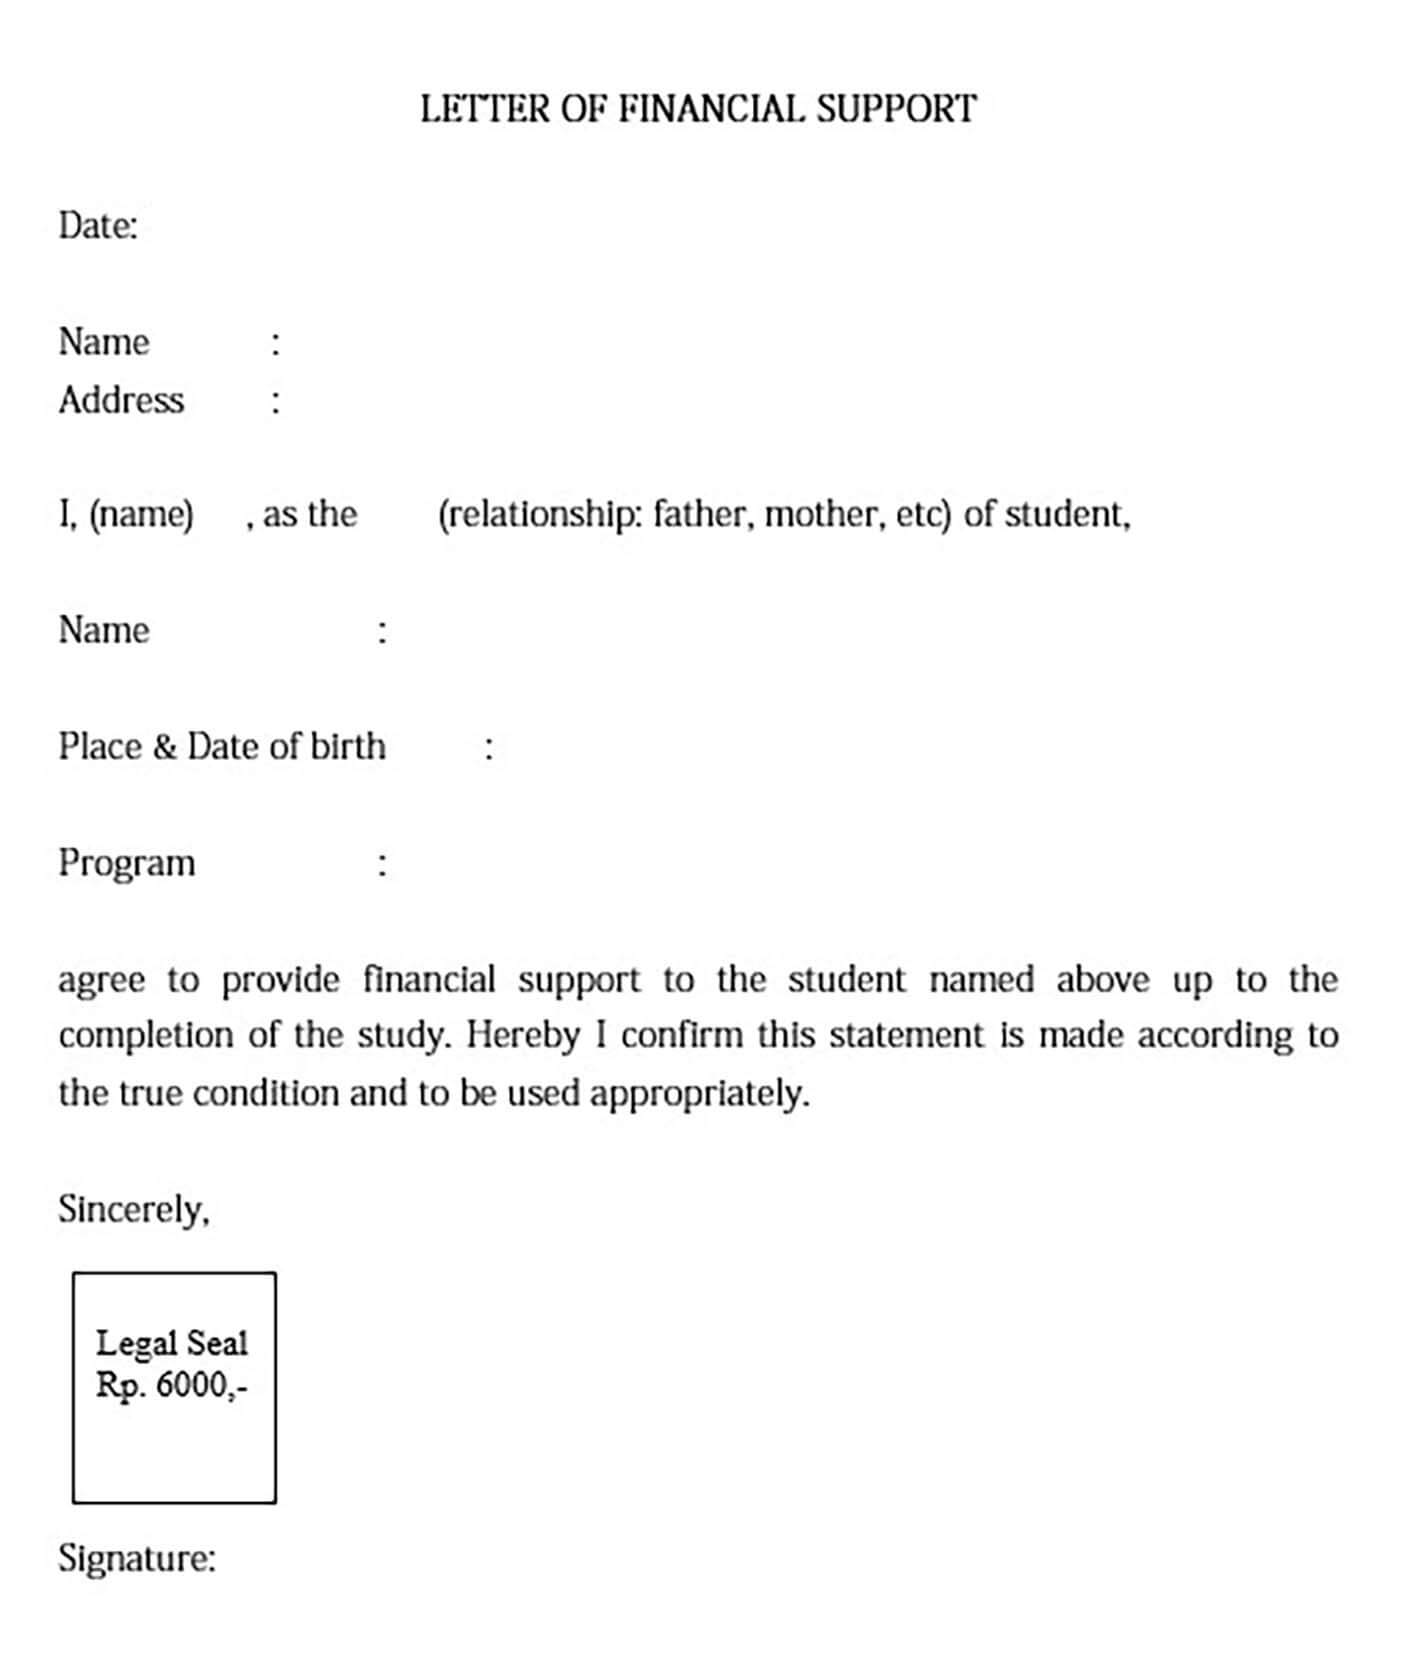 Letter of Financial Support for Student